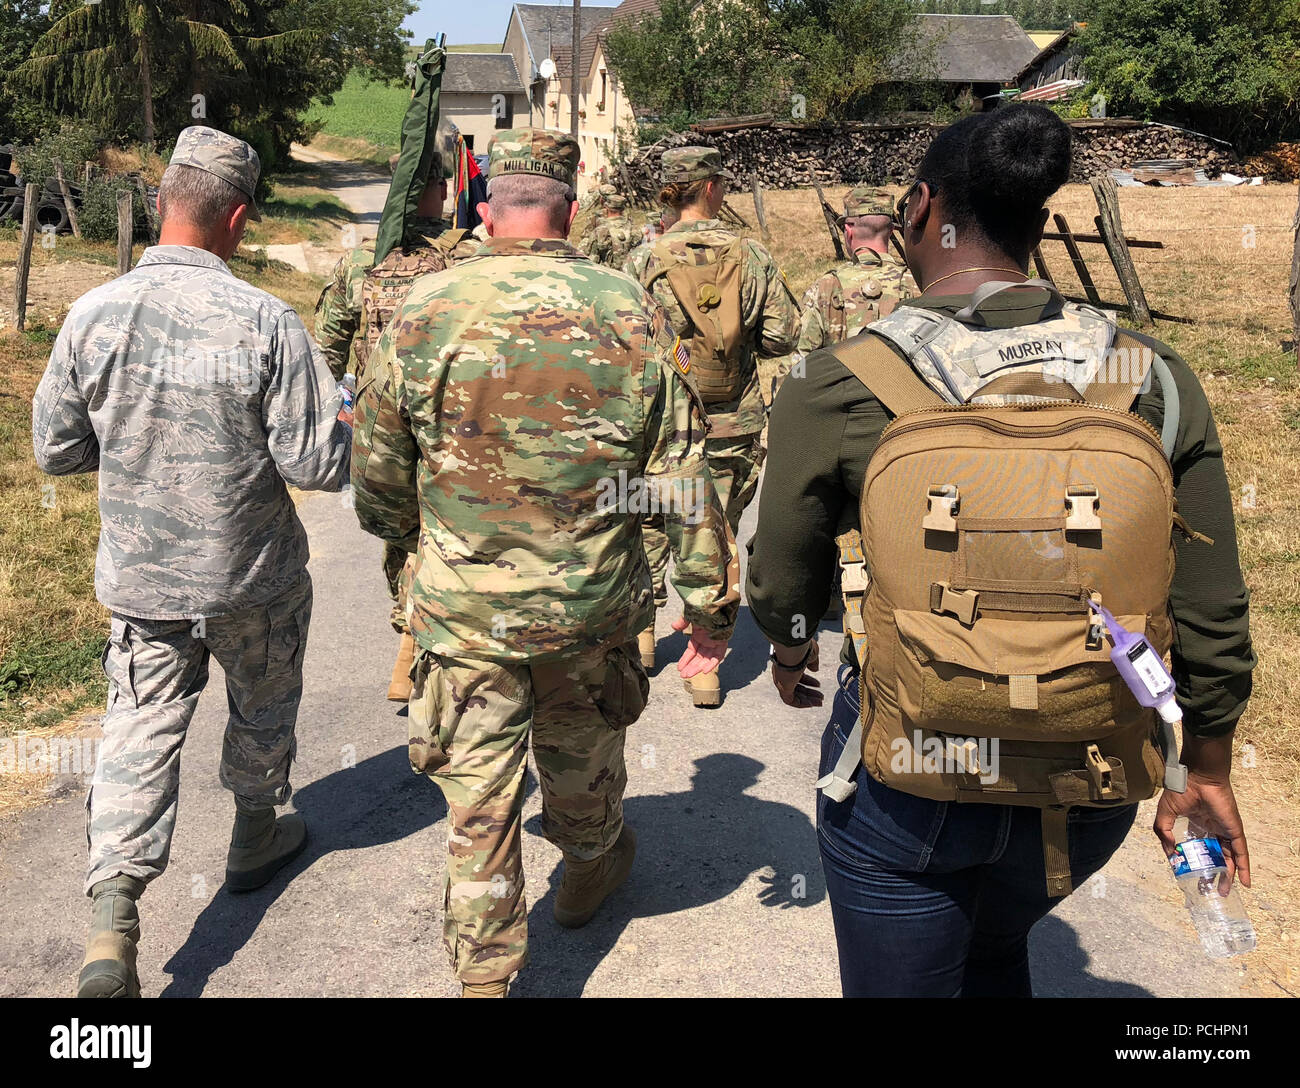 Major General Anthony German, the Adjutant General of the New York National Guard walks with Soldiers from the Division on July 27, 2018 from the town of Sergy, France where the Soldiers and Airmen participated in the Croix Rouge Farm ten mile walk. The Croix Rouge Farm battlefield tour was a 10-mile road march of historic sites of the Rainbow Division's first offensive actions from July 25-30, 1918. The assault of the division was part of the first allied attack across a 25-mile front near Soissons and Chateau-Thierry on German positions in over a year. The attack alongside French forces also - Stock Image